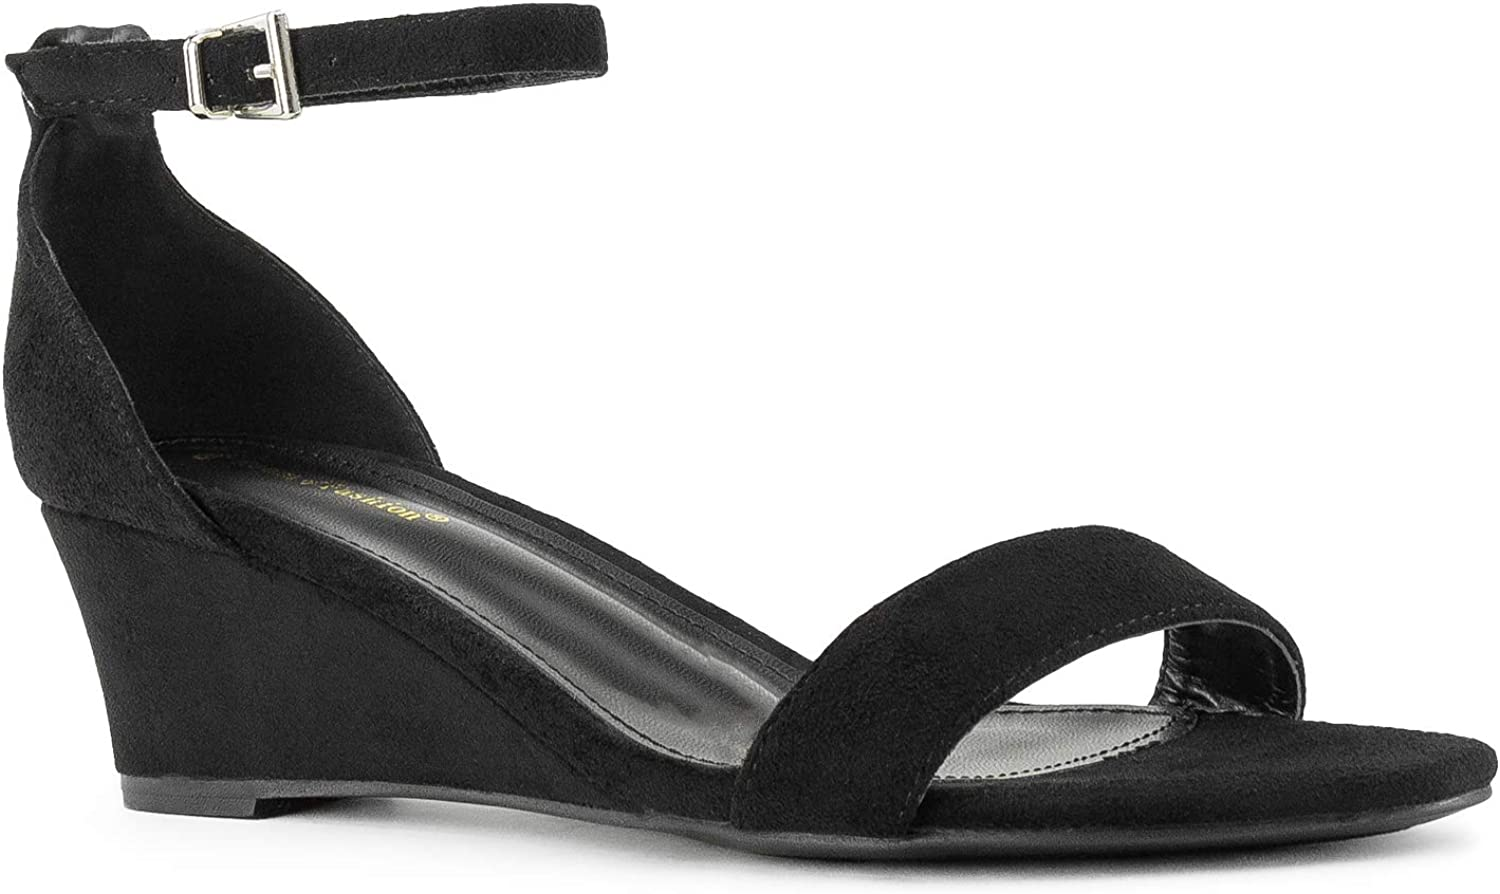 RF ROOM OF Indianapolis Mall FASHION Women's True Max 43% OFF Wide Platf Width Ankle Strap Low